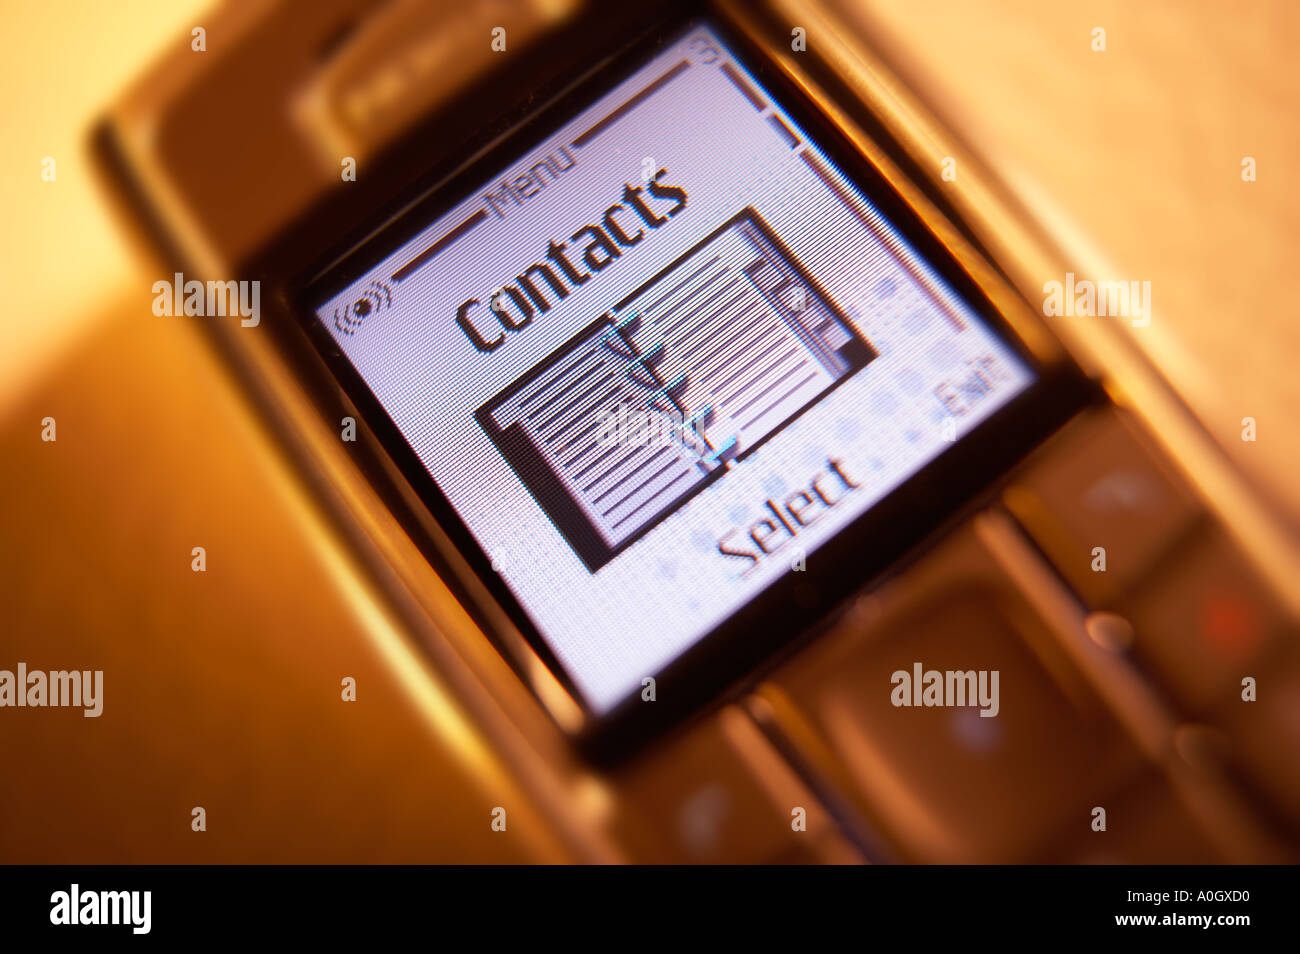 CONTACTS MENU TEXT ON MOBILE PHONE SCREEN - Stock Image